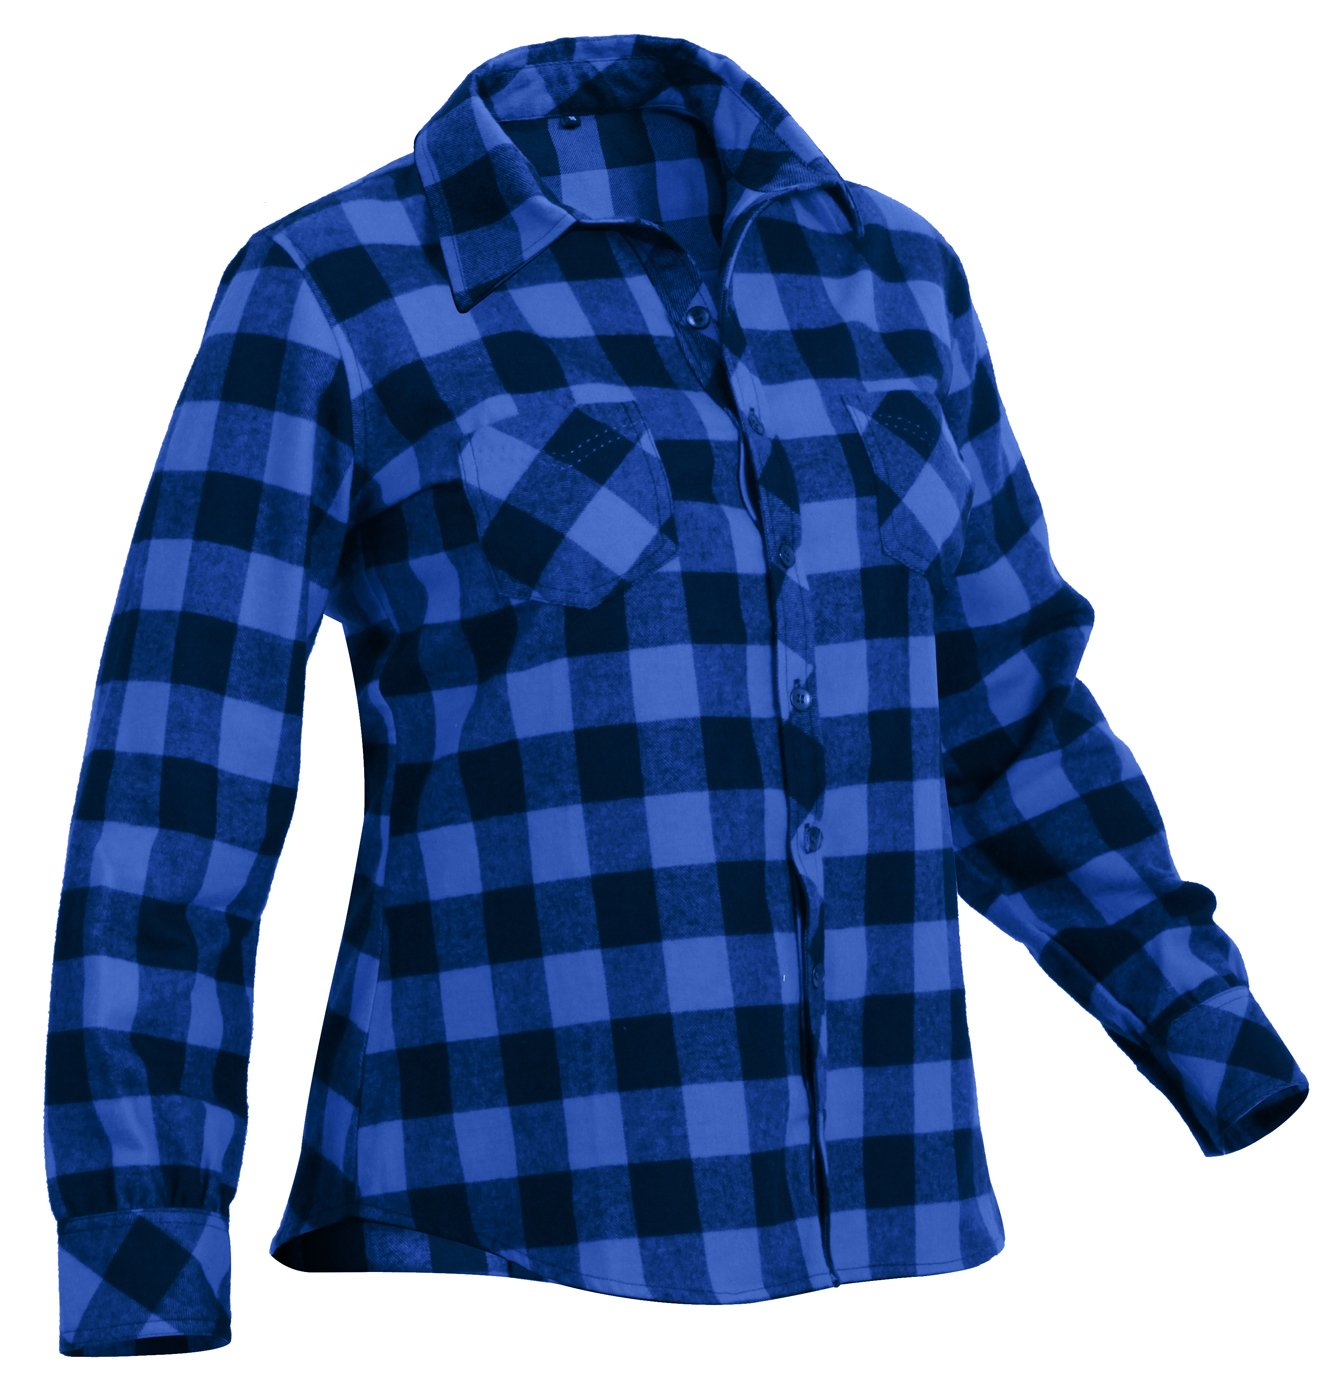 Rothco Womens Plaid Flannel Shirt, Blue/Black, 2XL, Blue by Rothco